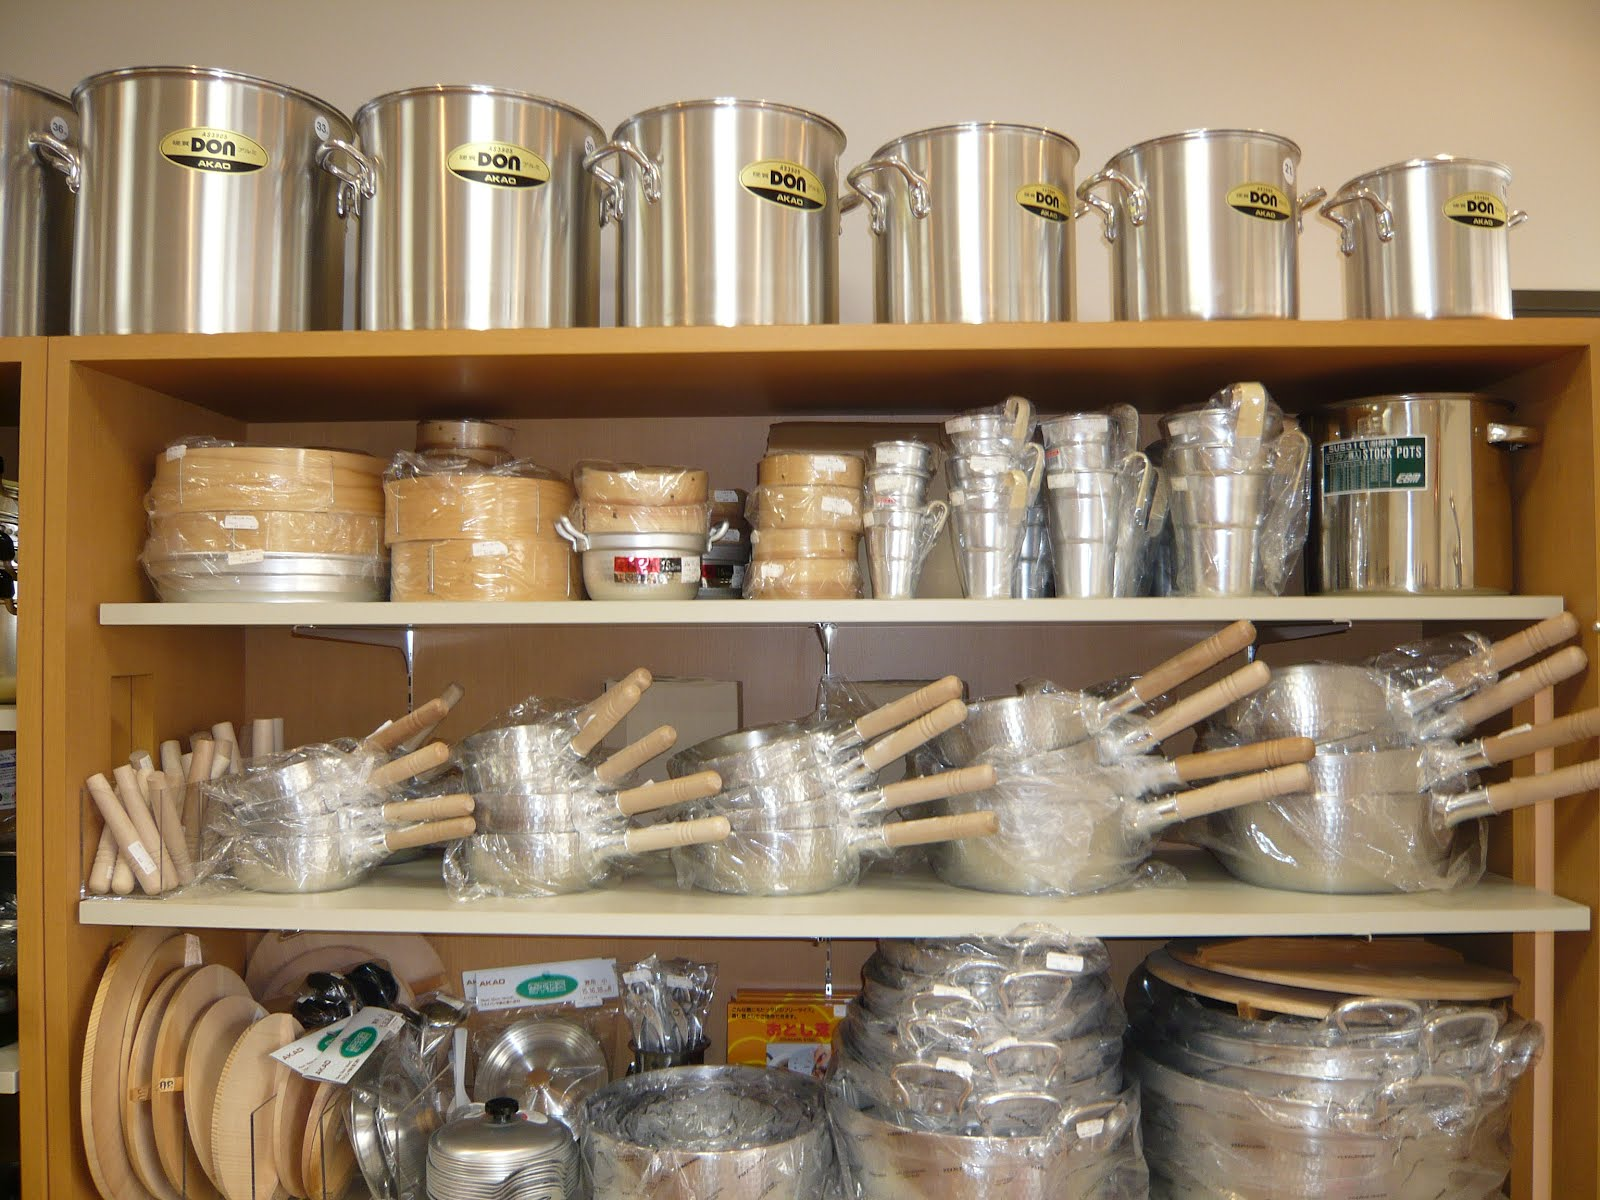 stores that sell kitchen items